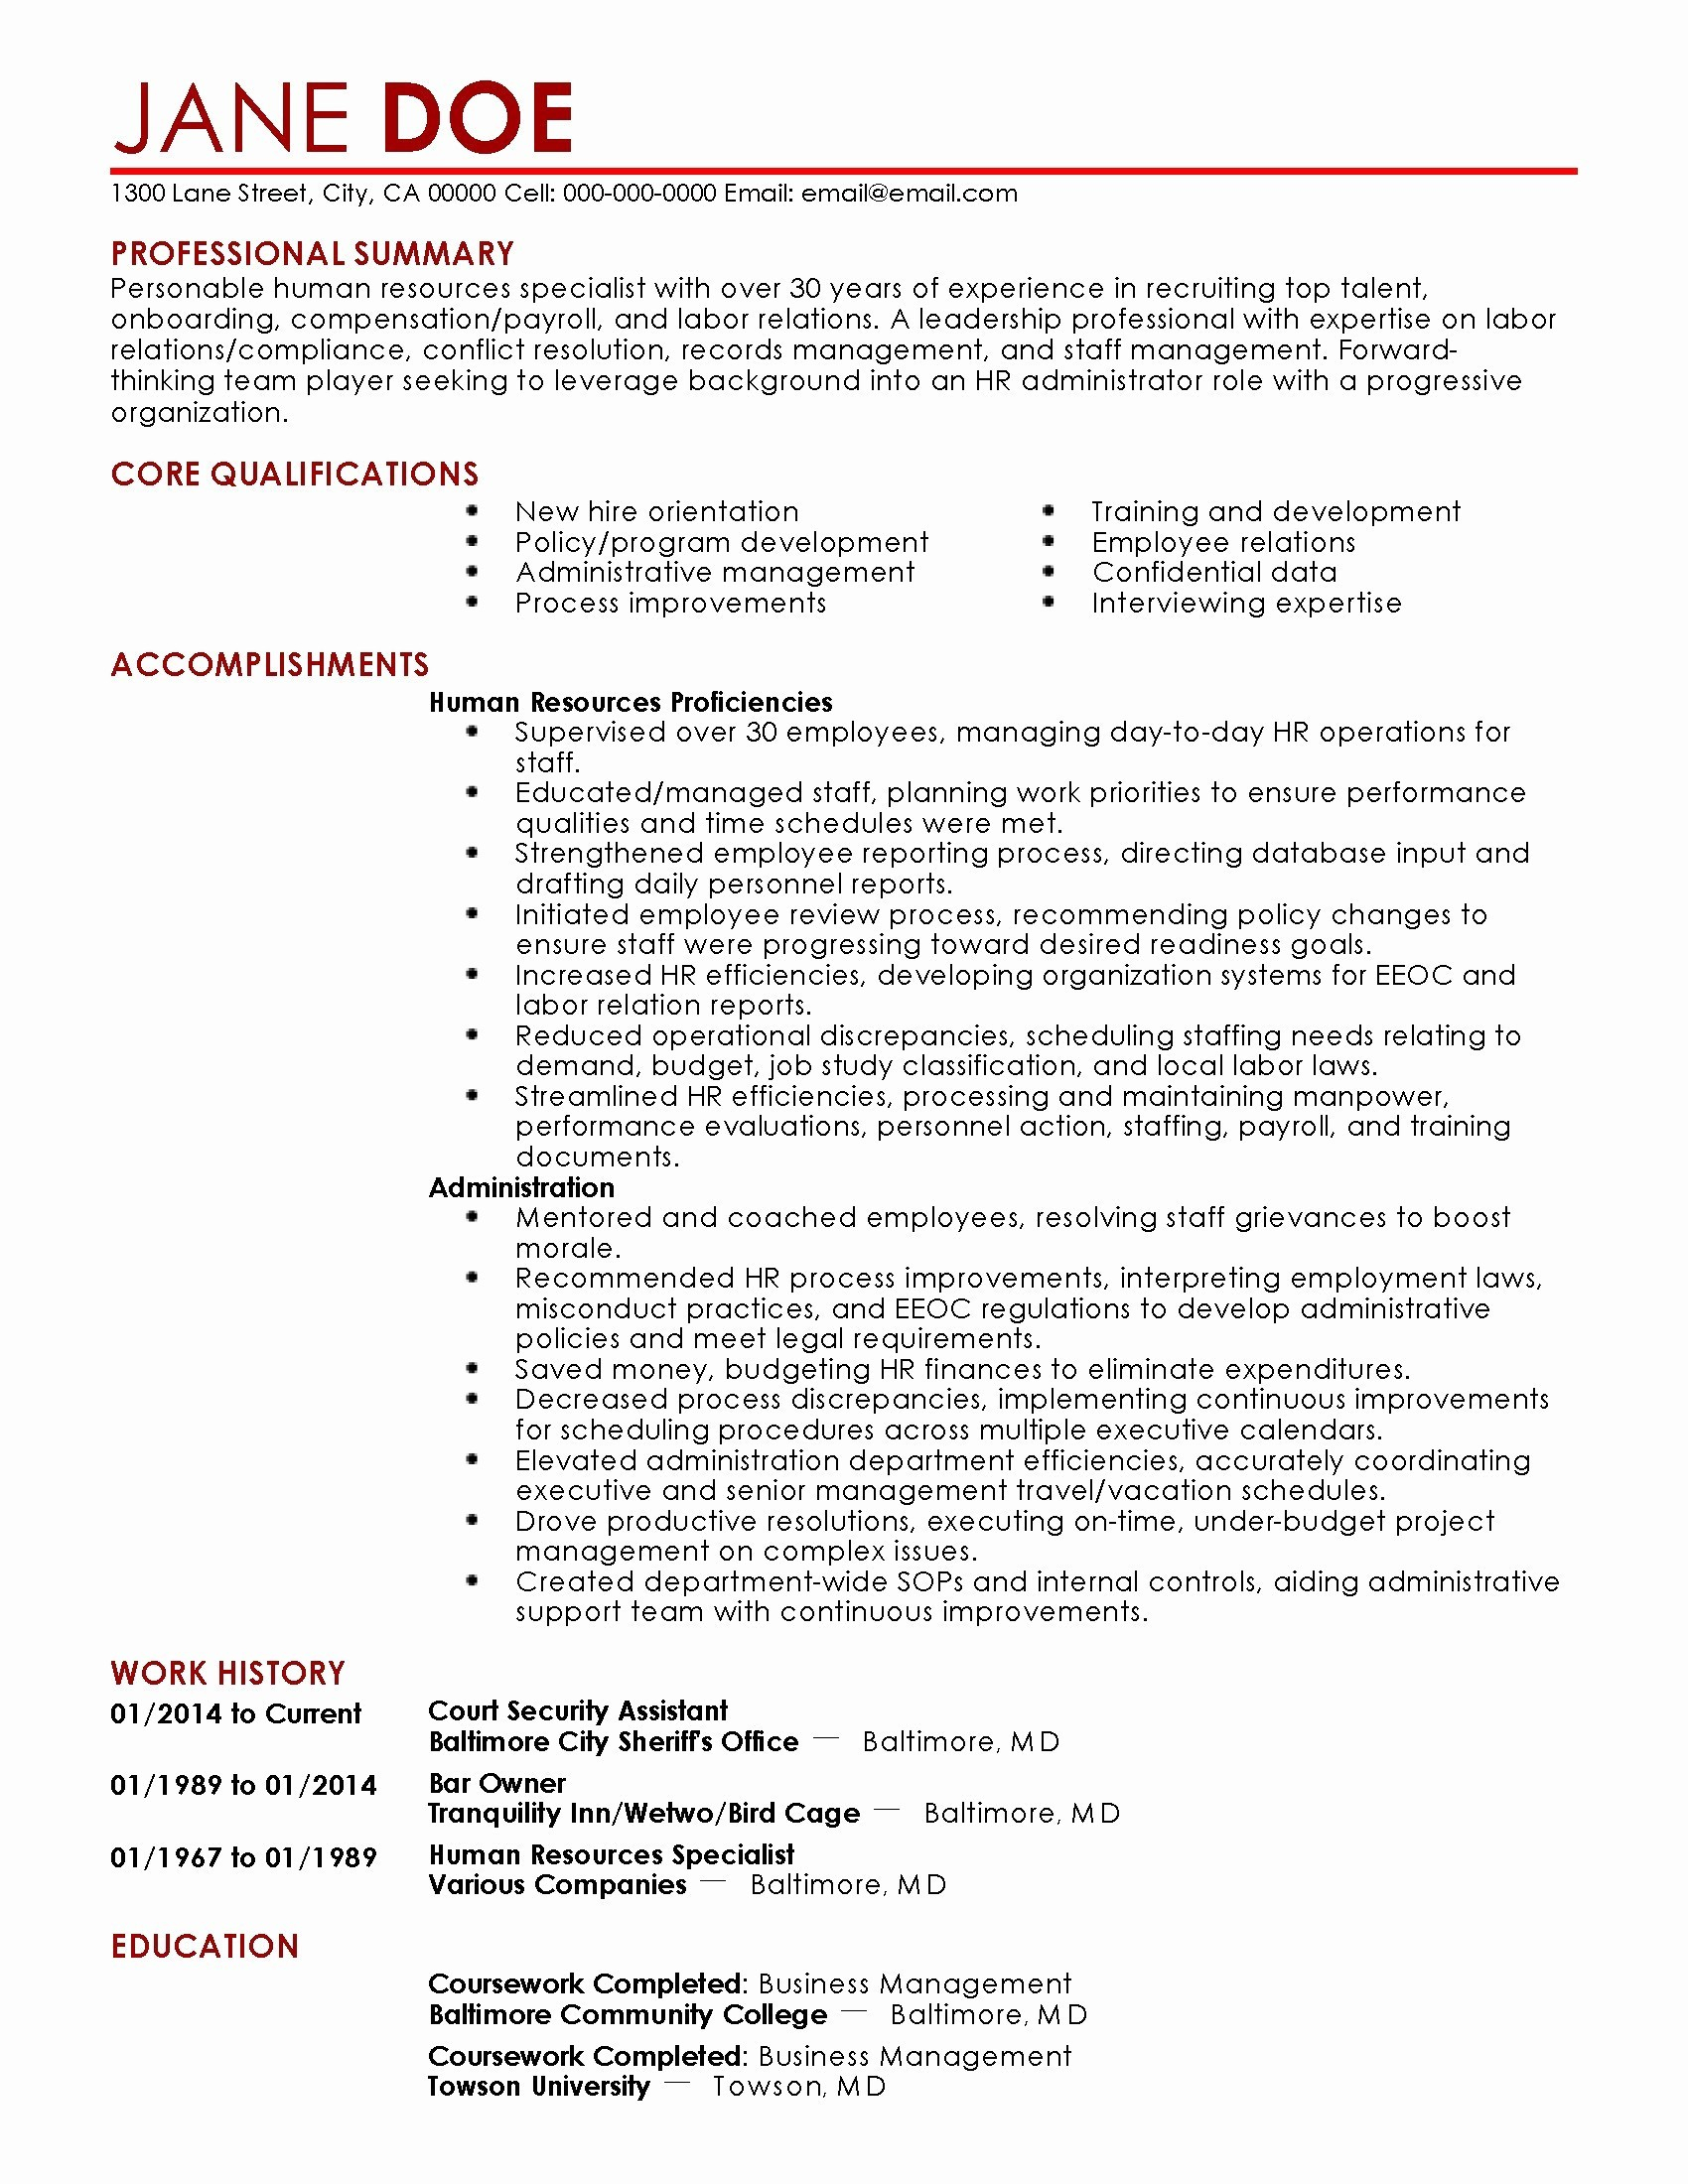 10 medical office resume template examples